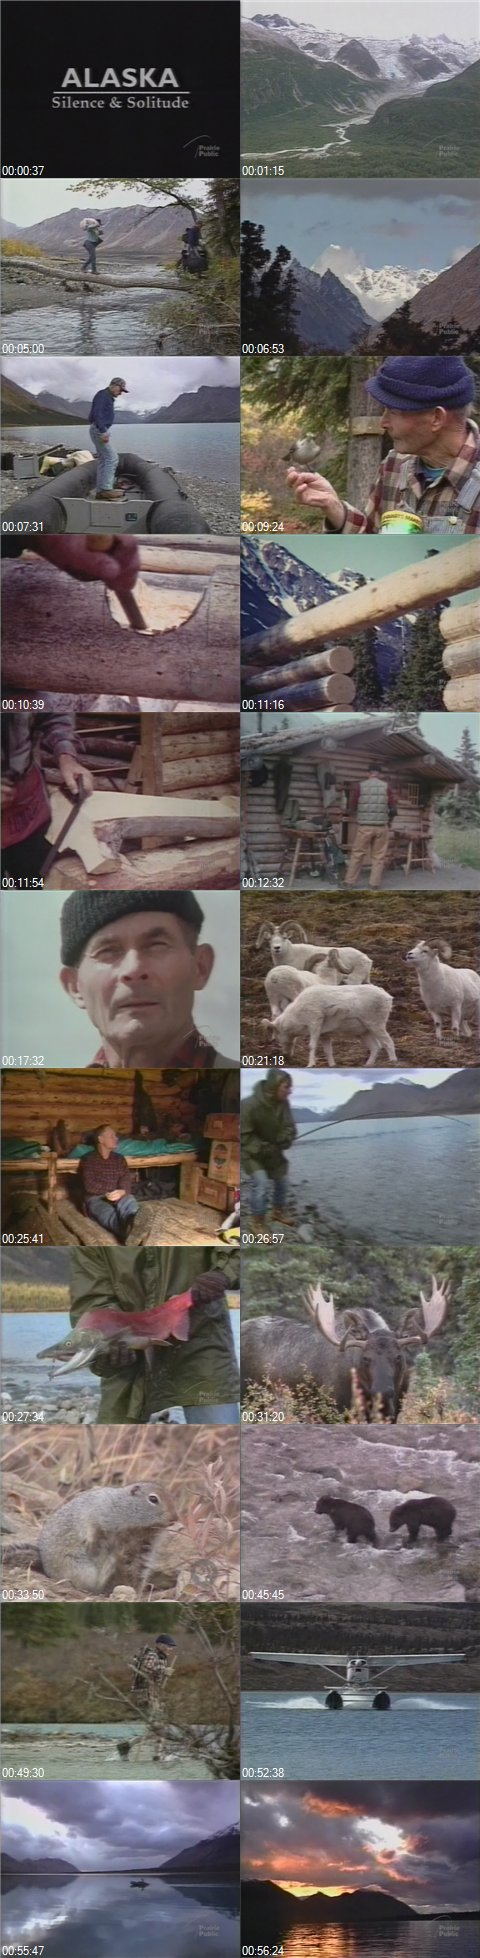 Alaska: Silence and Solitude XviD mp3 (forums mvgroup org) preview 1